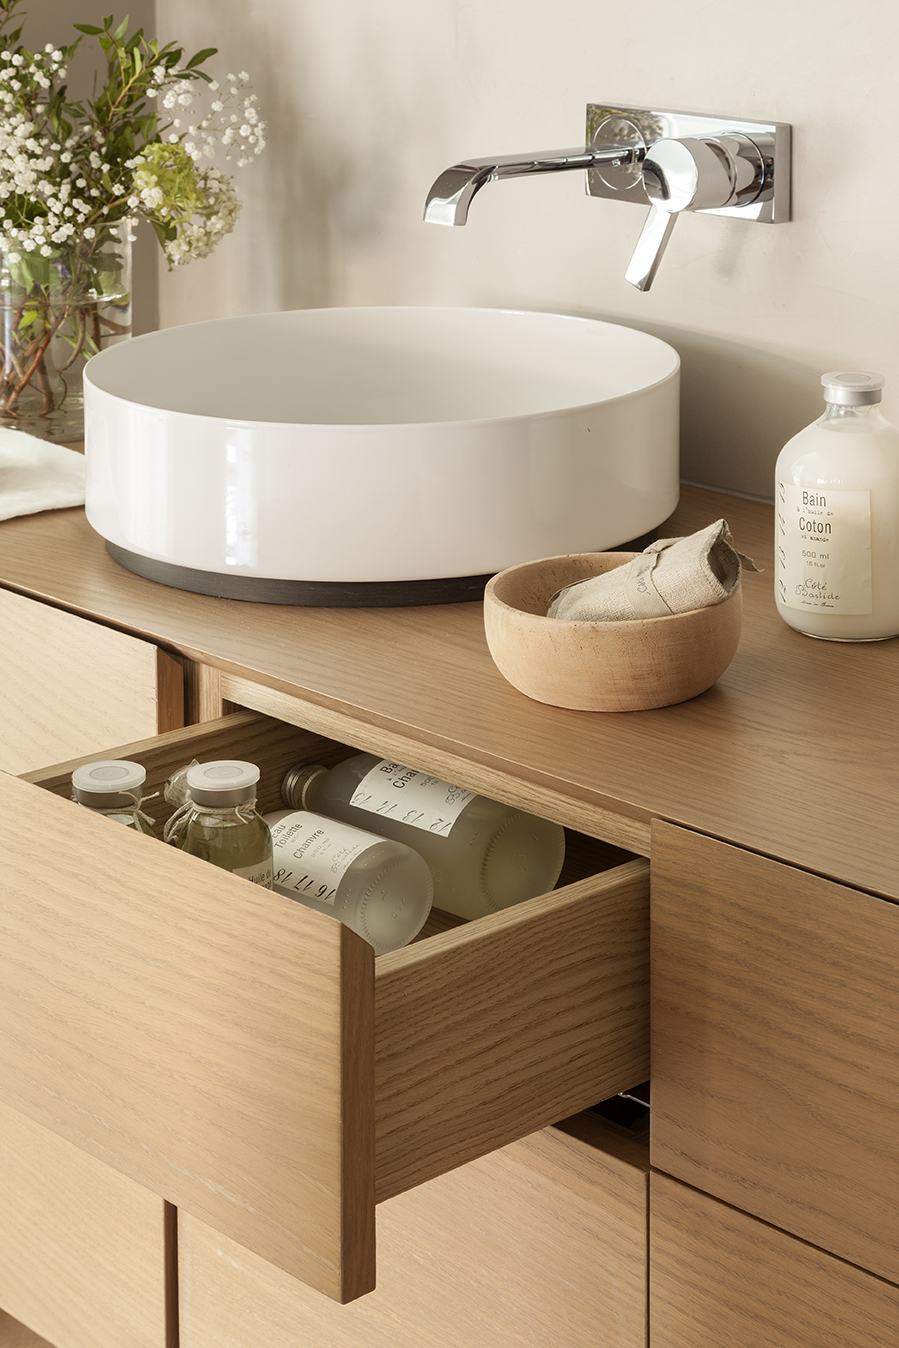 Ideas para que tu ba o sea m s confortable y acogedor - Mueble lavabo madera ...